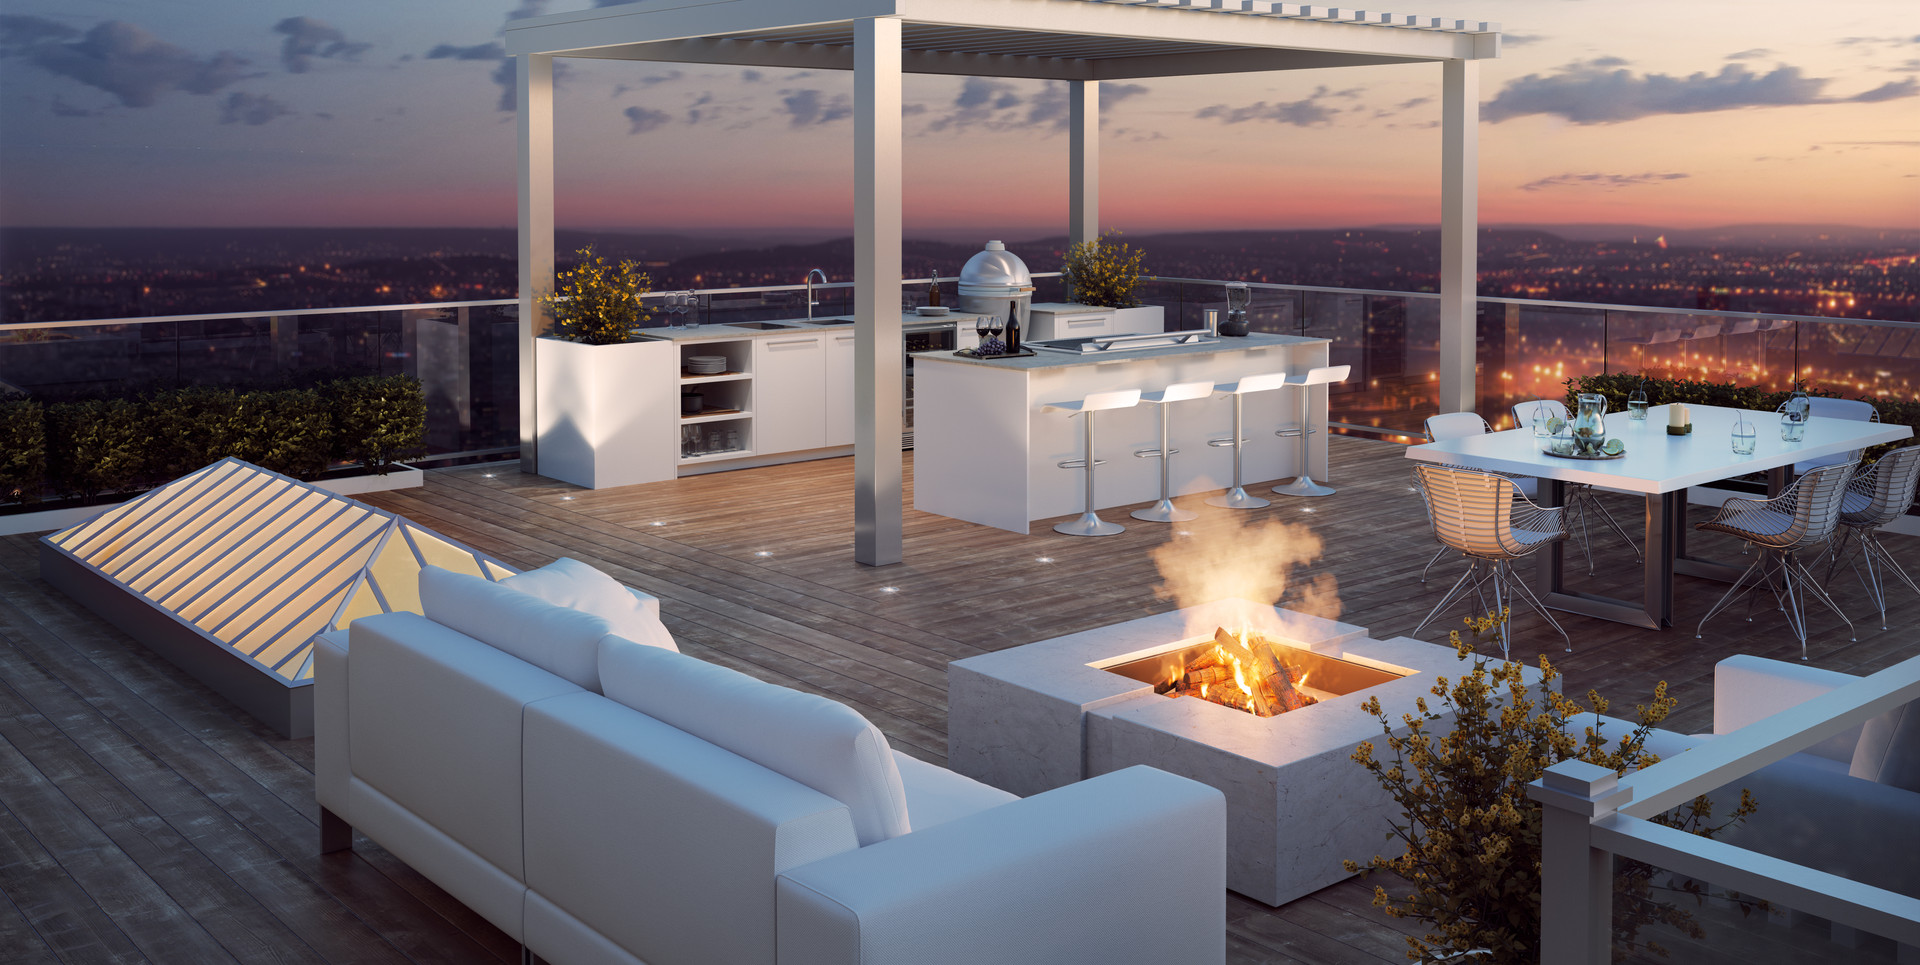 Outdoor Kitchen Outdoor Living of NJ